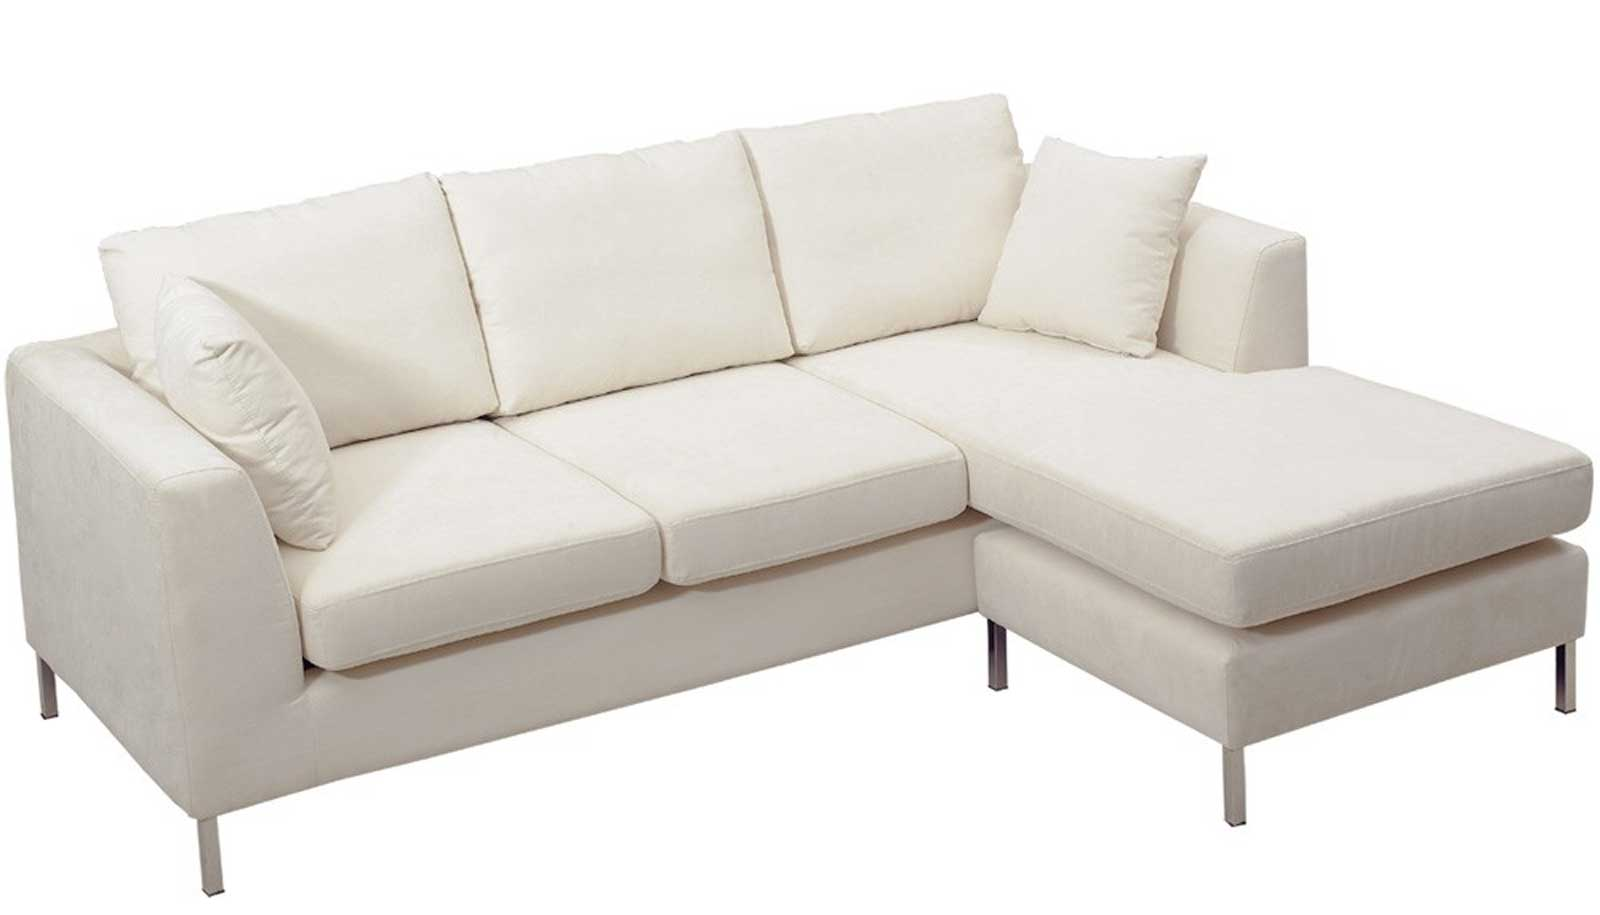 white microfiber sectional sofa cheap for sale sydney sofas as stylish home office